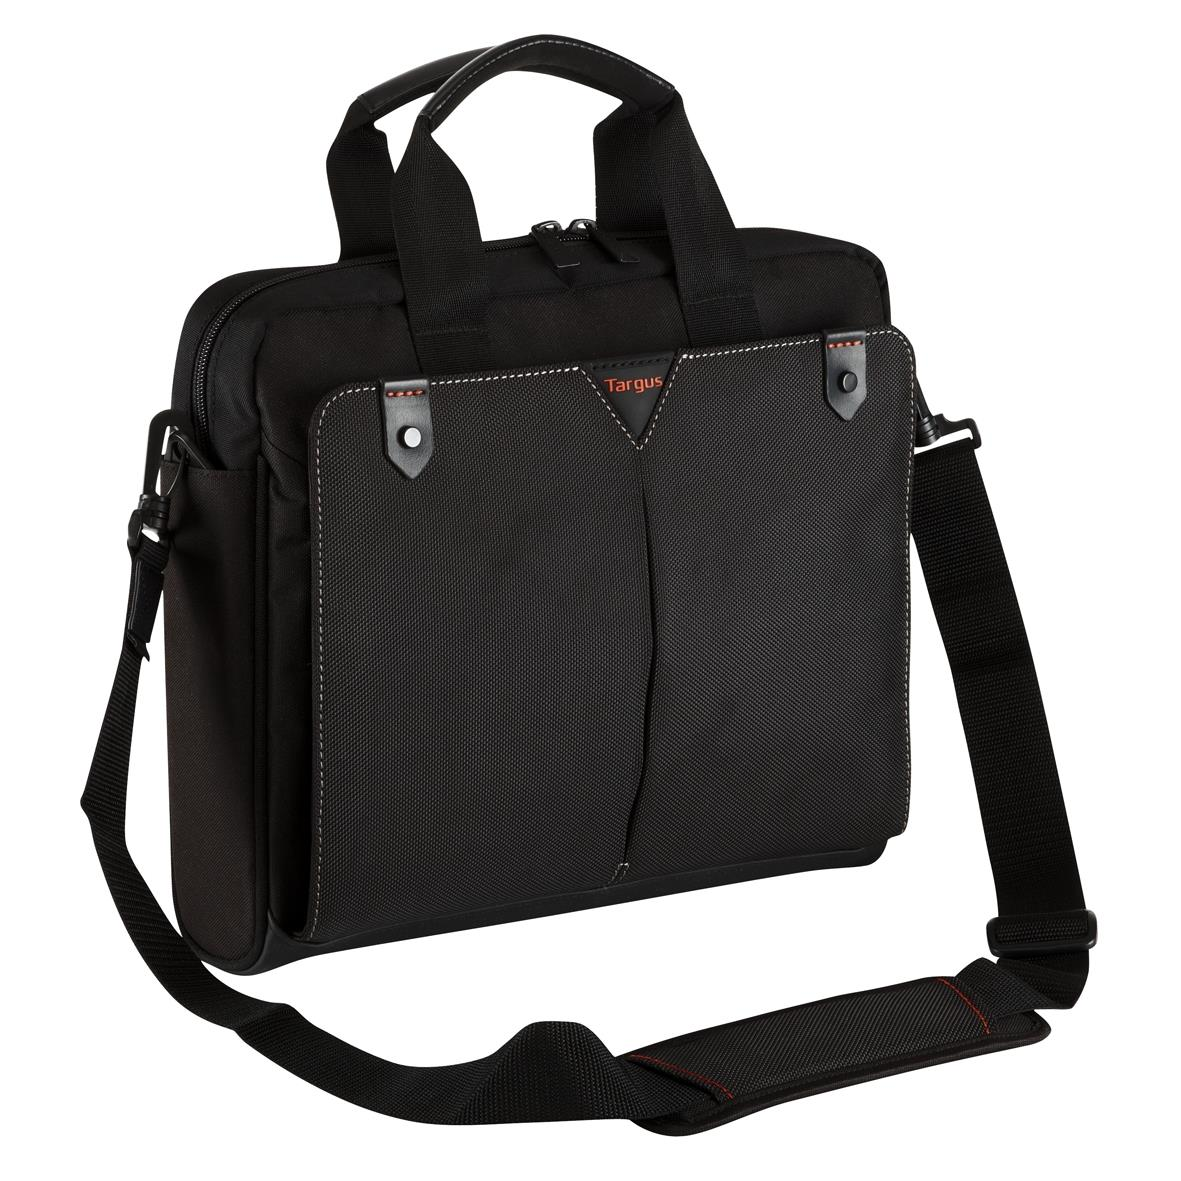 0010686_classic-15-156-topload-laptop-bag-black_thumb.jpeg